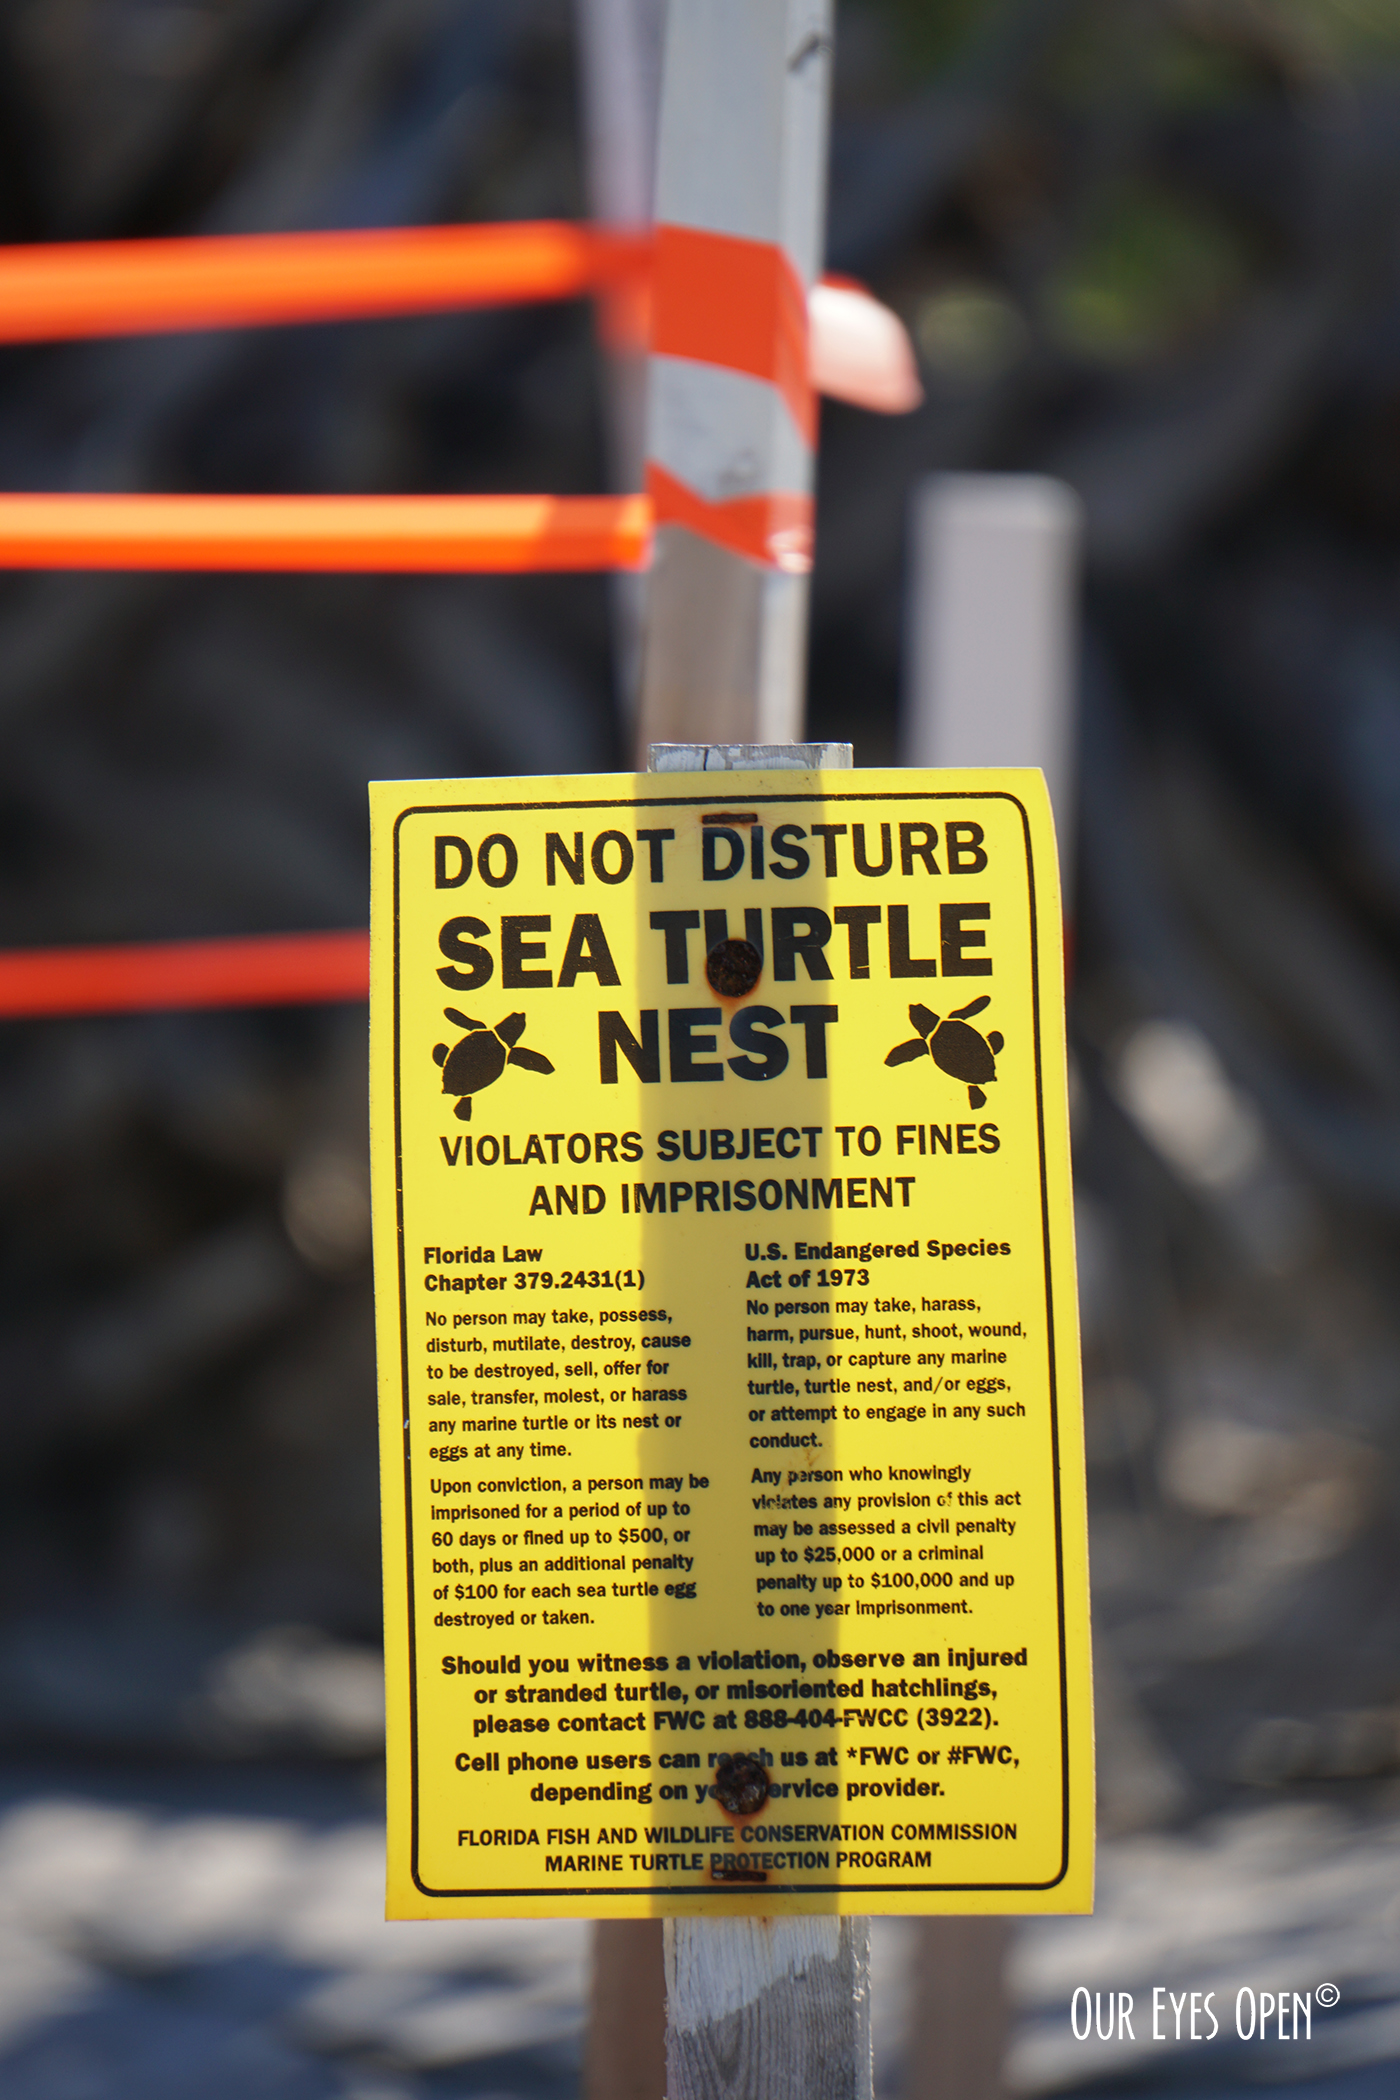 BEWARE, Do Not Disturb Sea Turtle Nest.